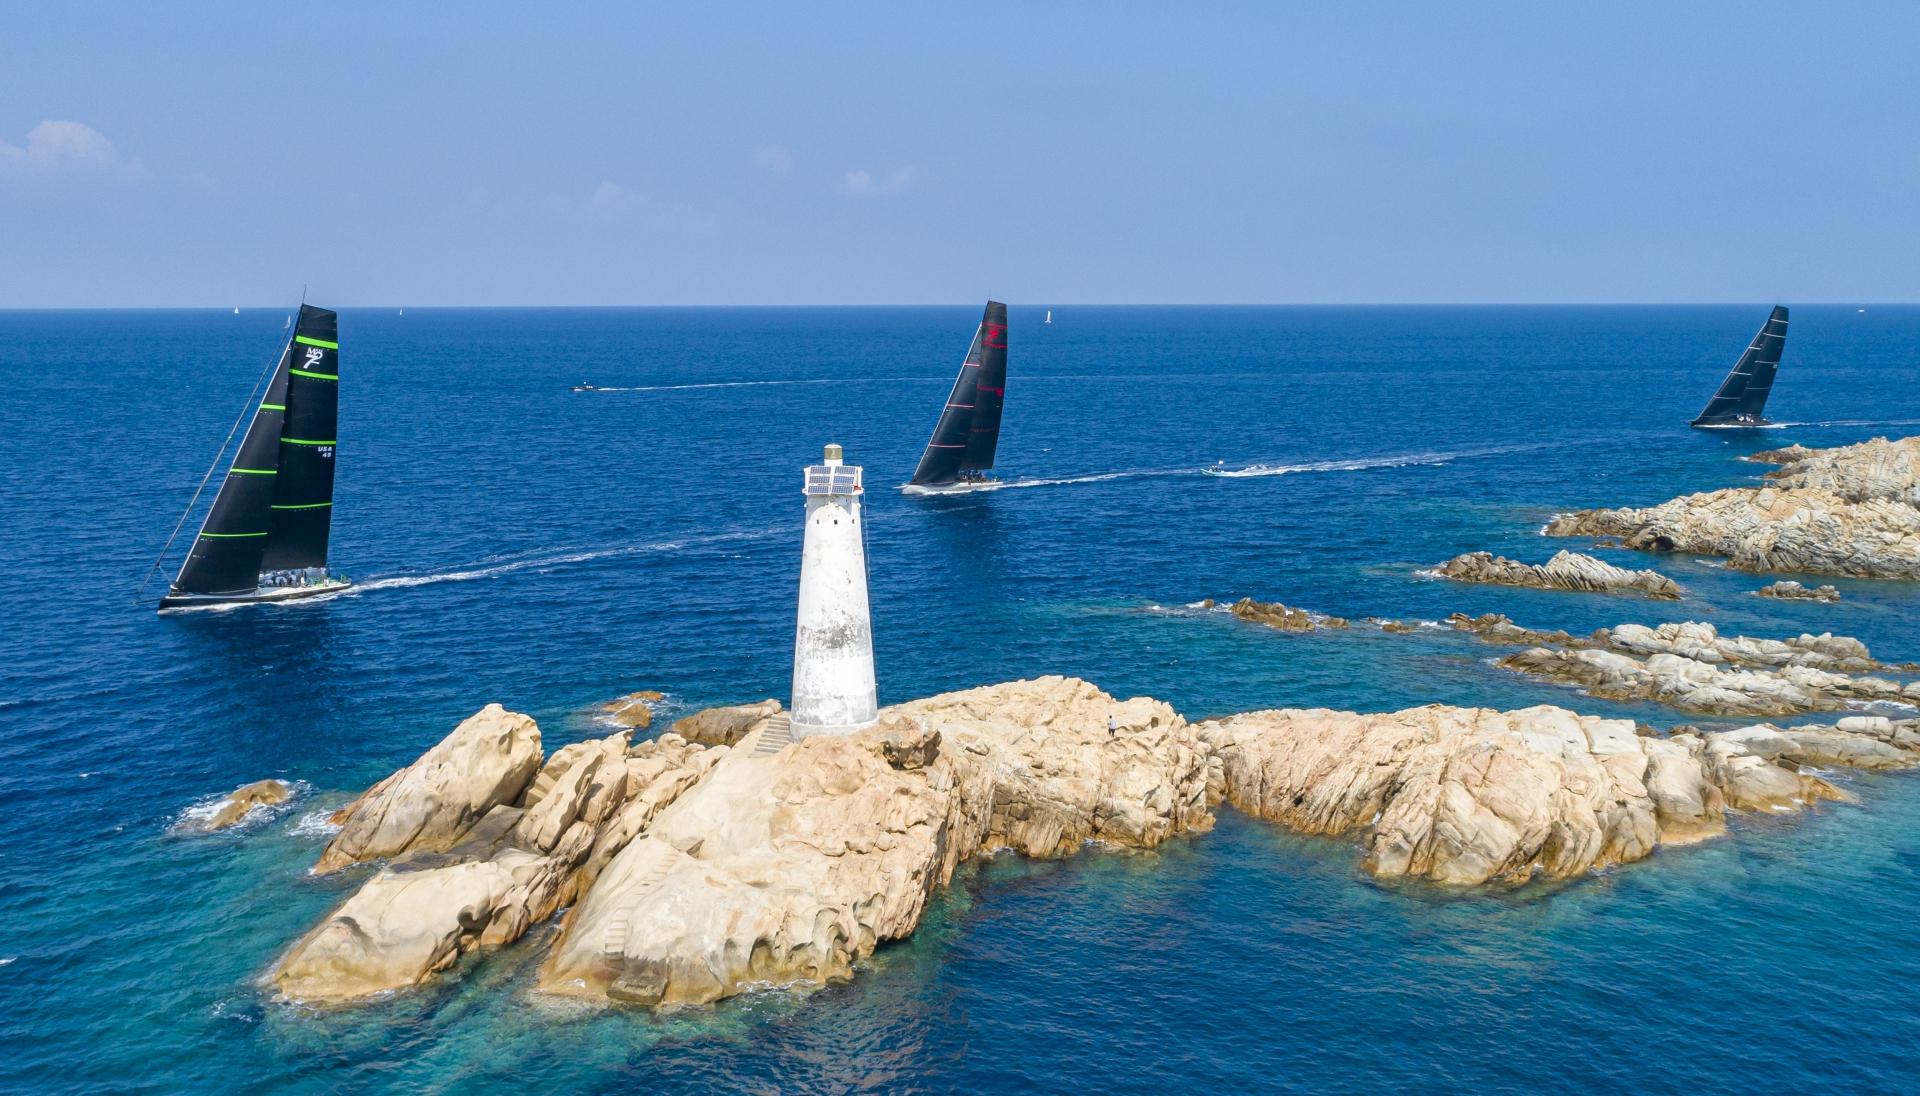 Entries open for Maxi Yacht Rolex Cup 2021  - NEWS - Yacht Club Costa Smeralda